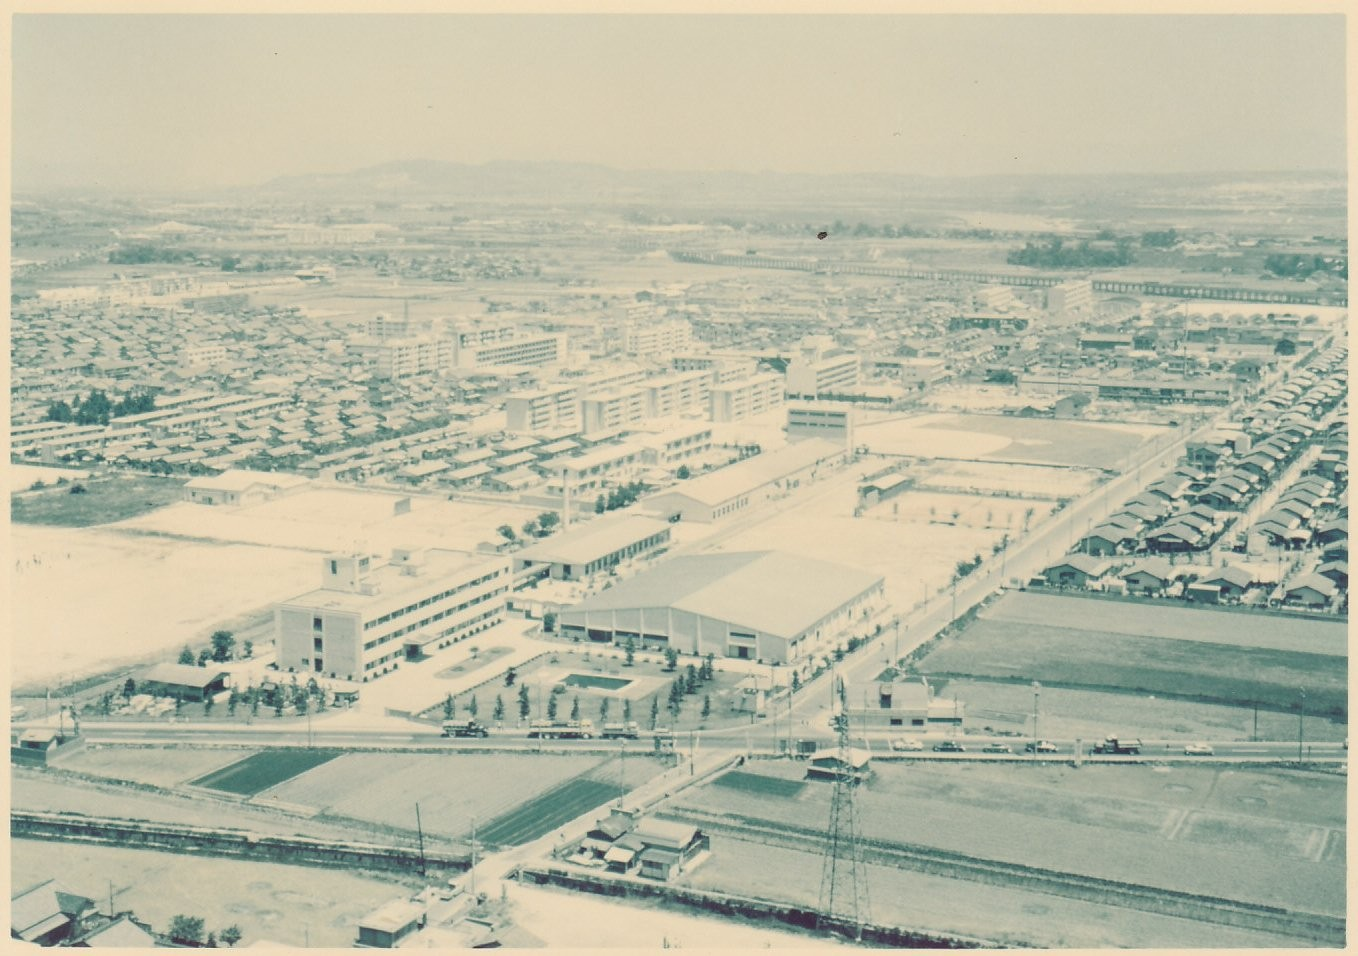 1970年 東洋紡績(株)高槻研究所 全景   Aerial picture of Takatsuki Research Center of TOYOBO Co., Ltd. in 1970